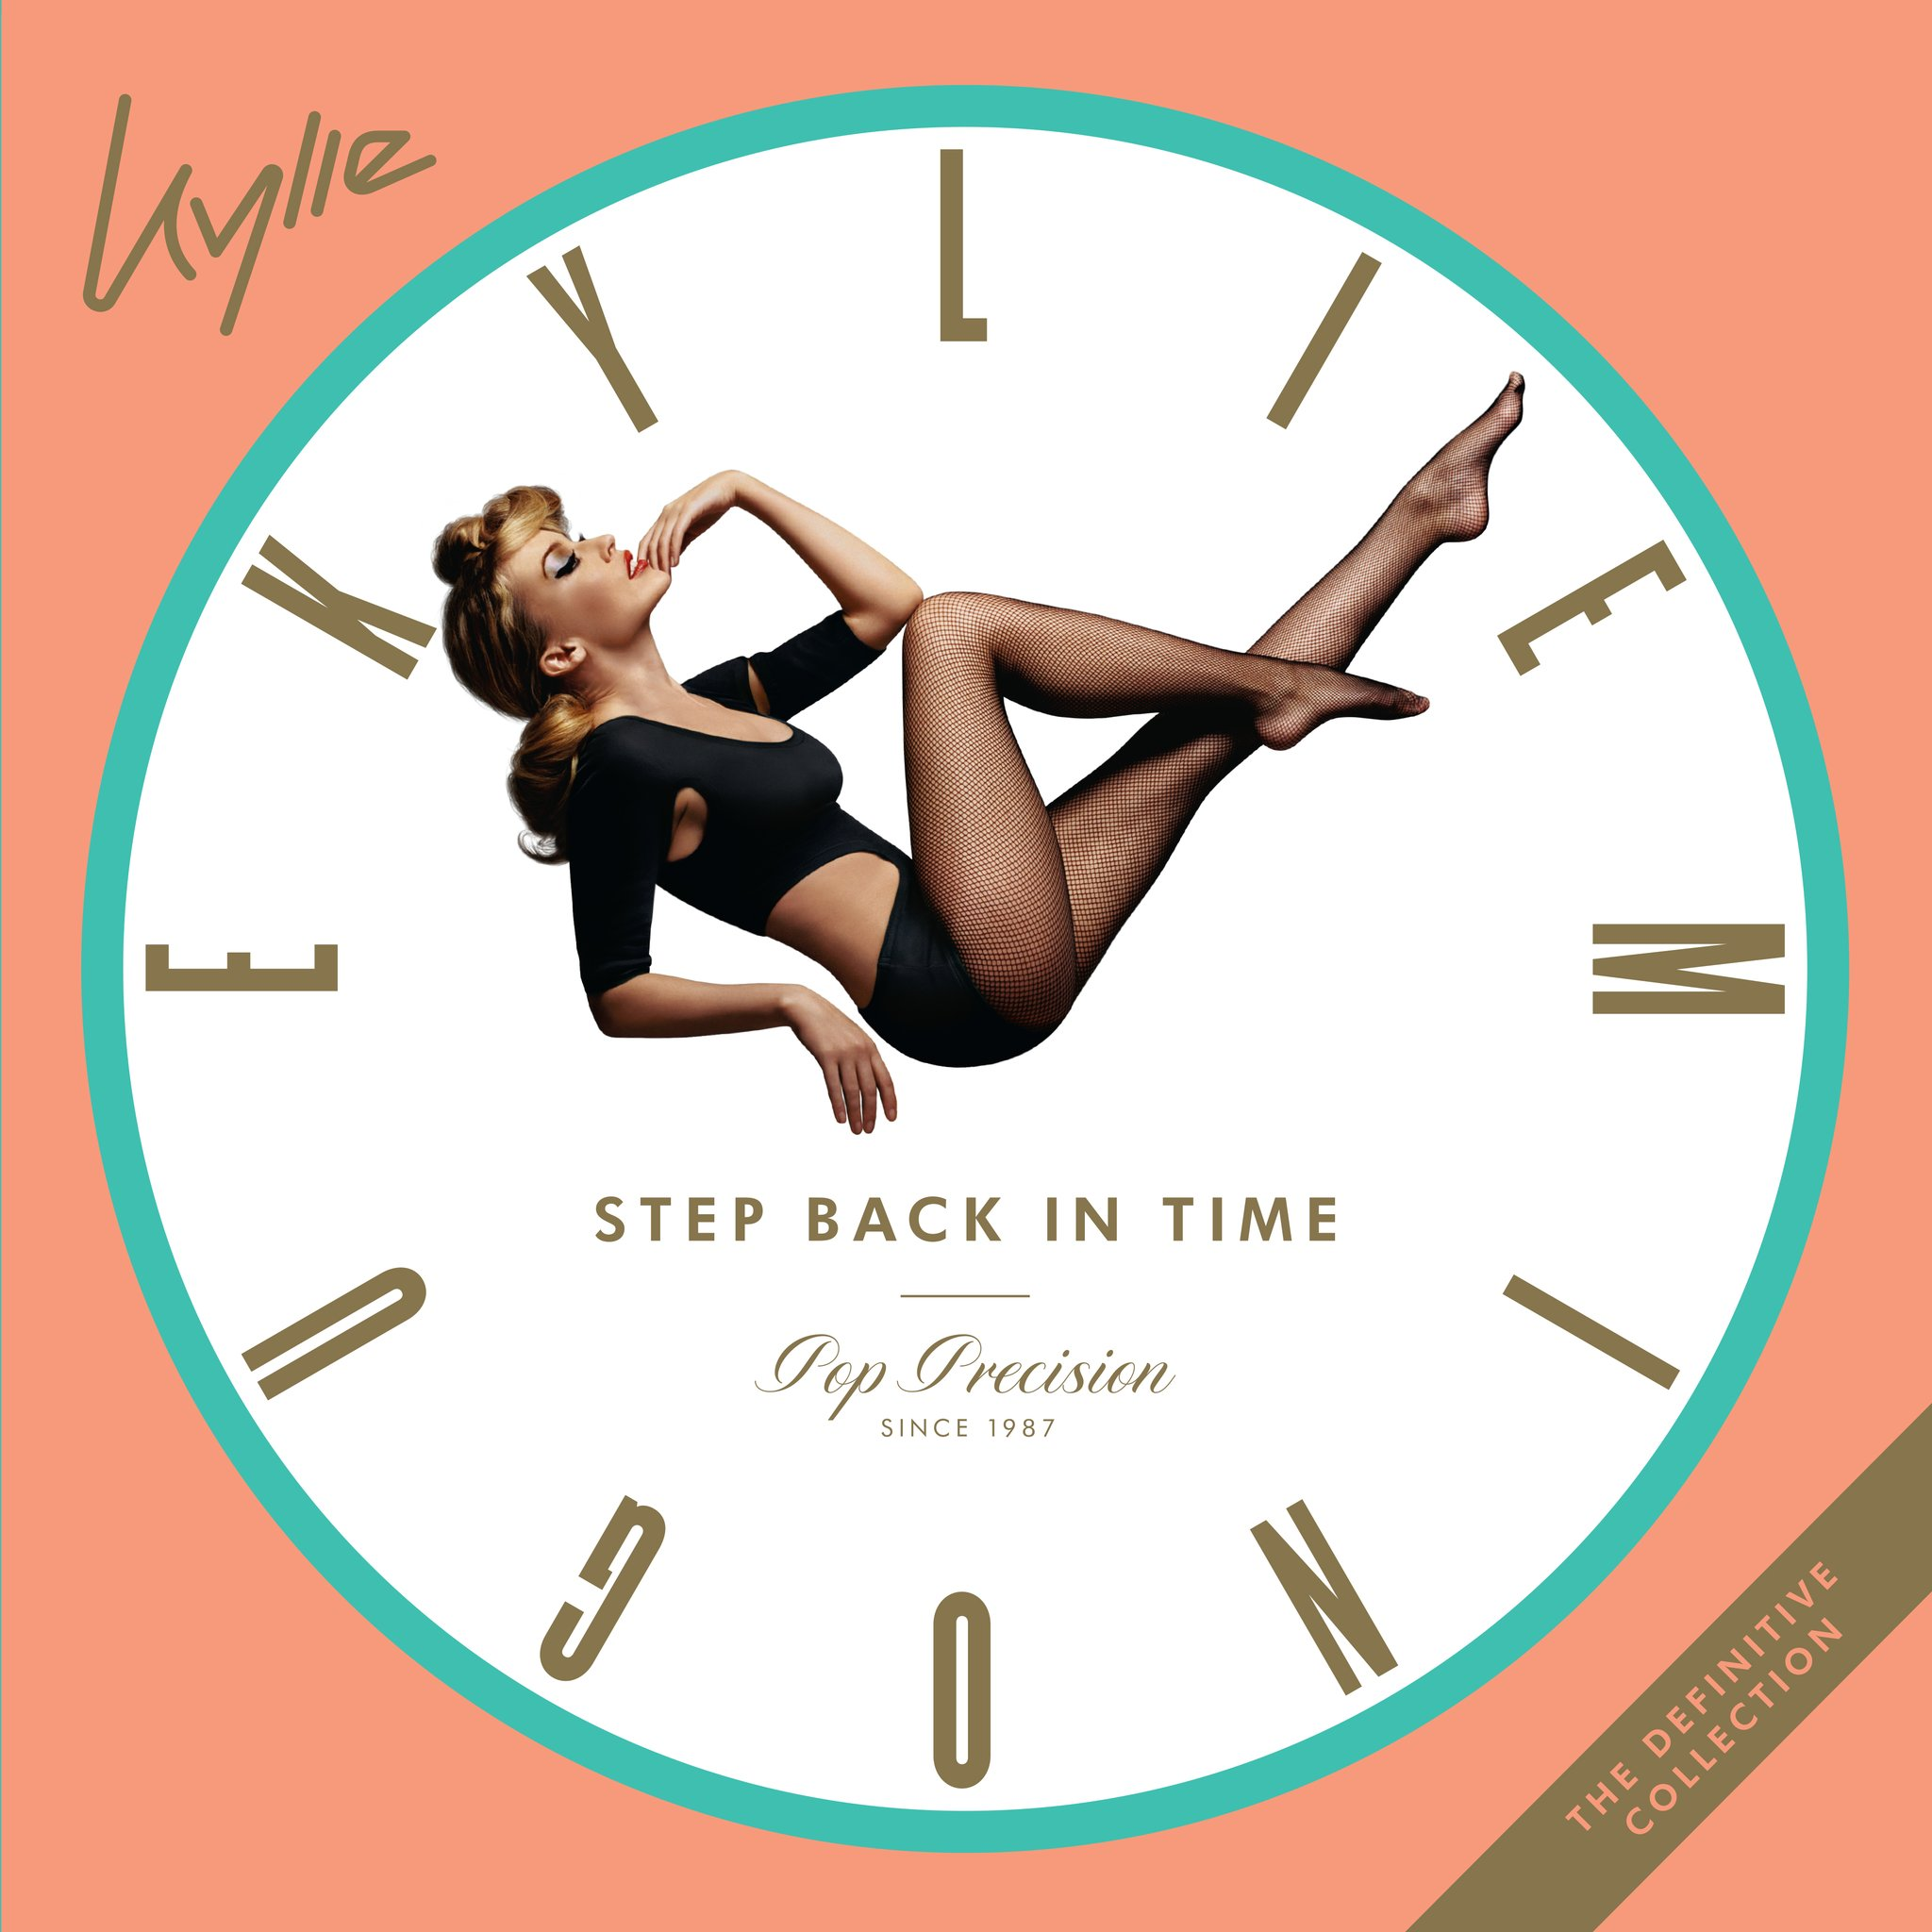 Kylie_Step_Back_In_Time_Deluxe_RGB_HI-RES_2048x